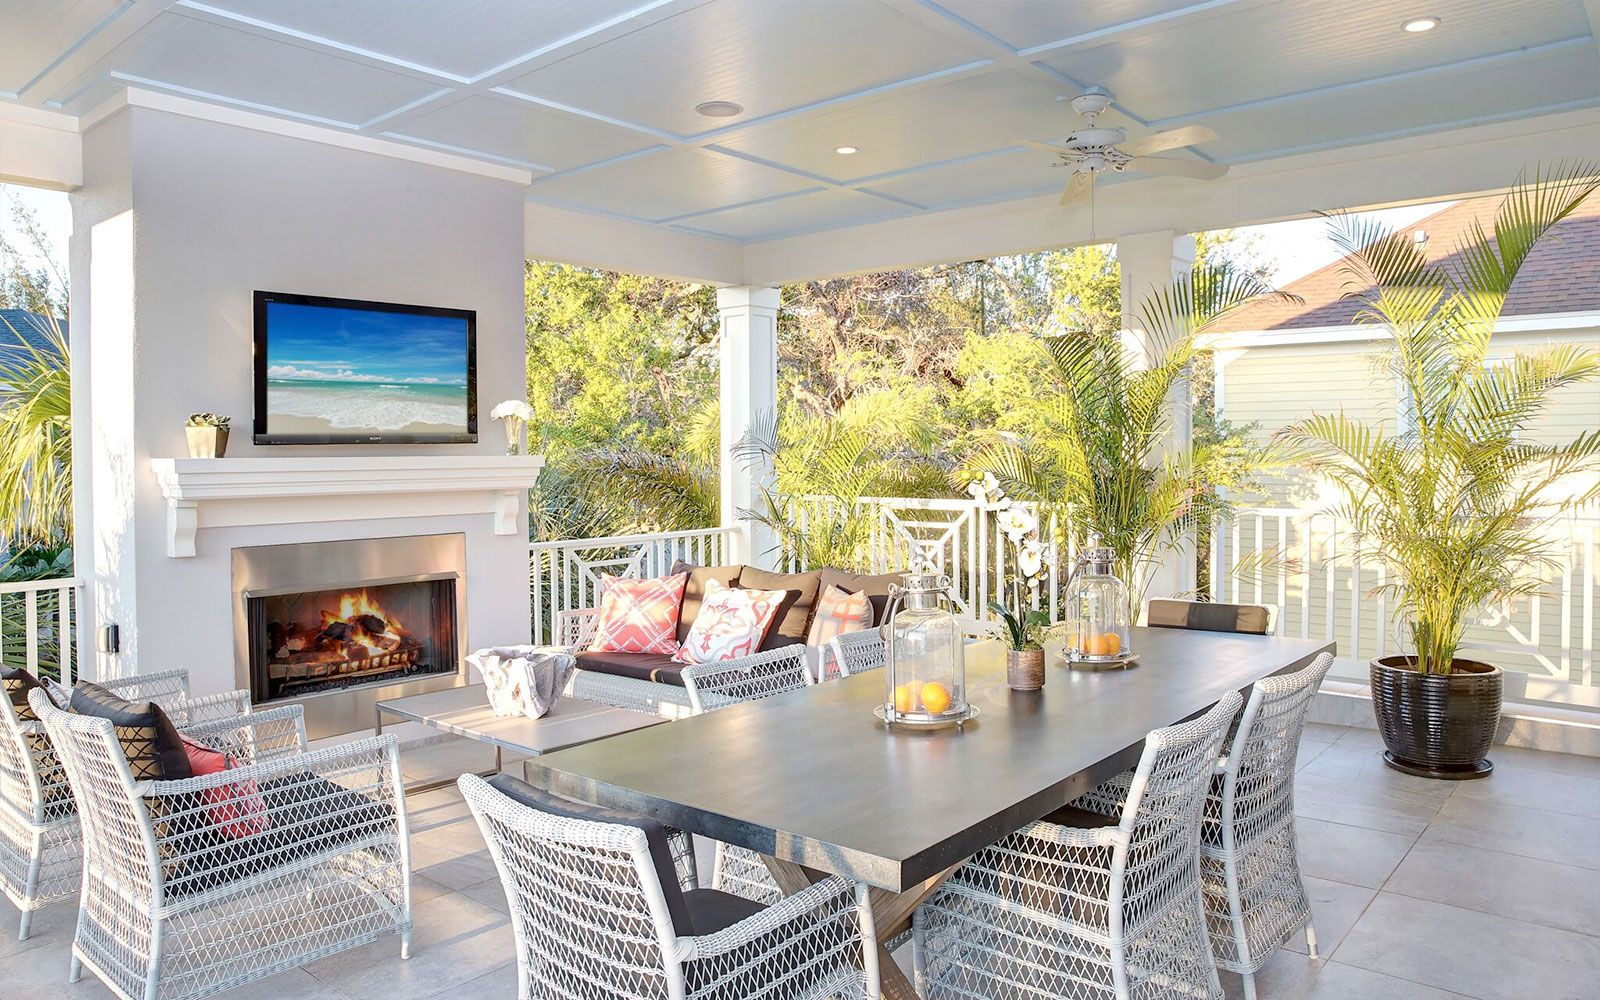 20 Stylish Outdoor Great Room Ideas Outdoorroom Pleasant To